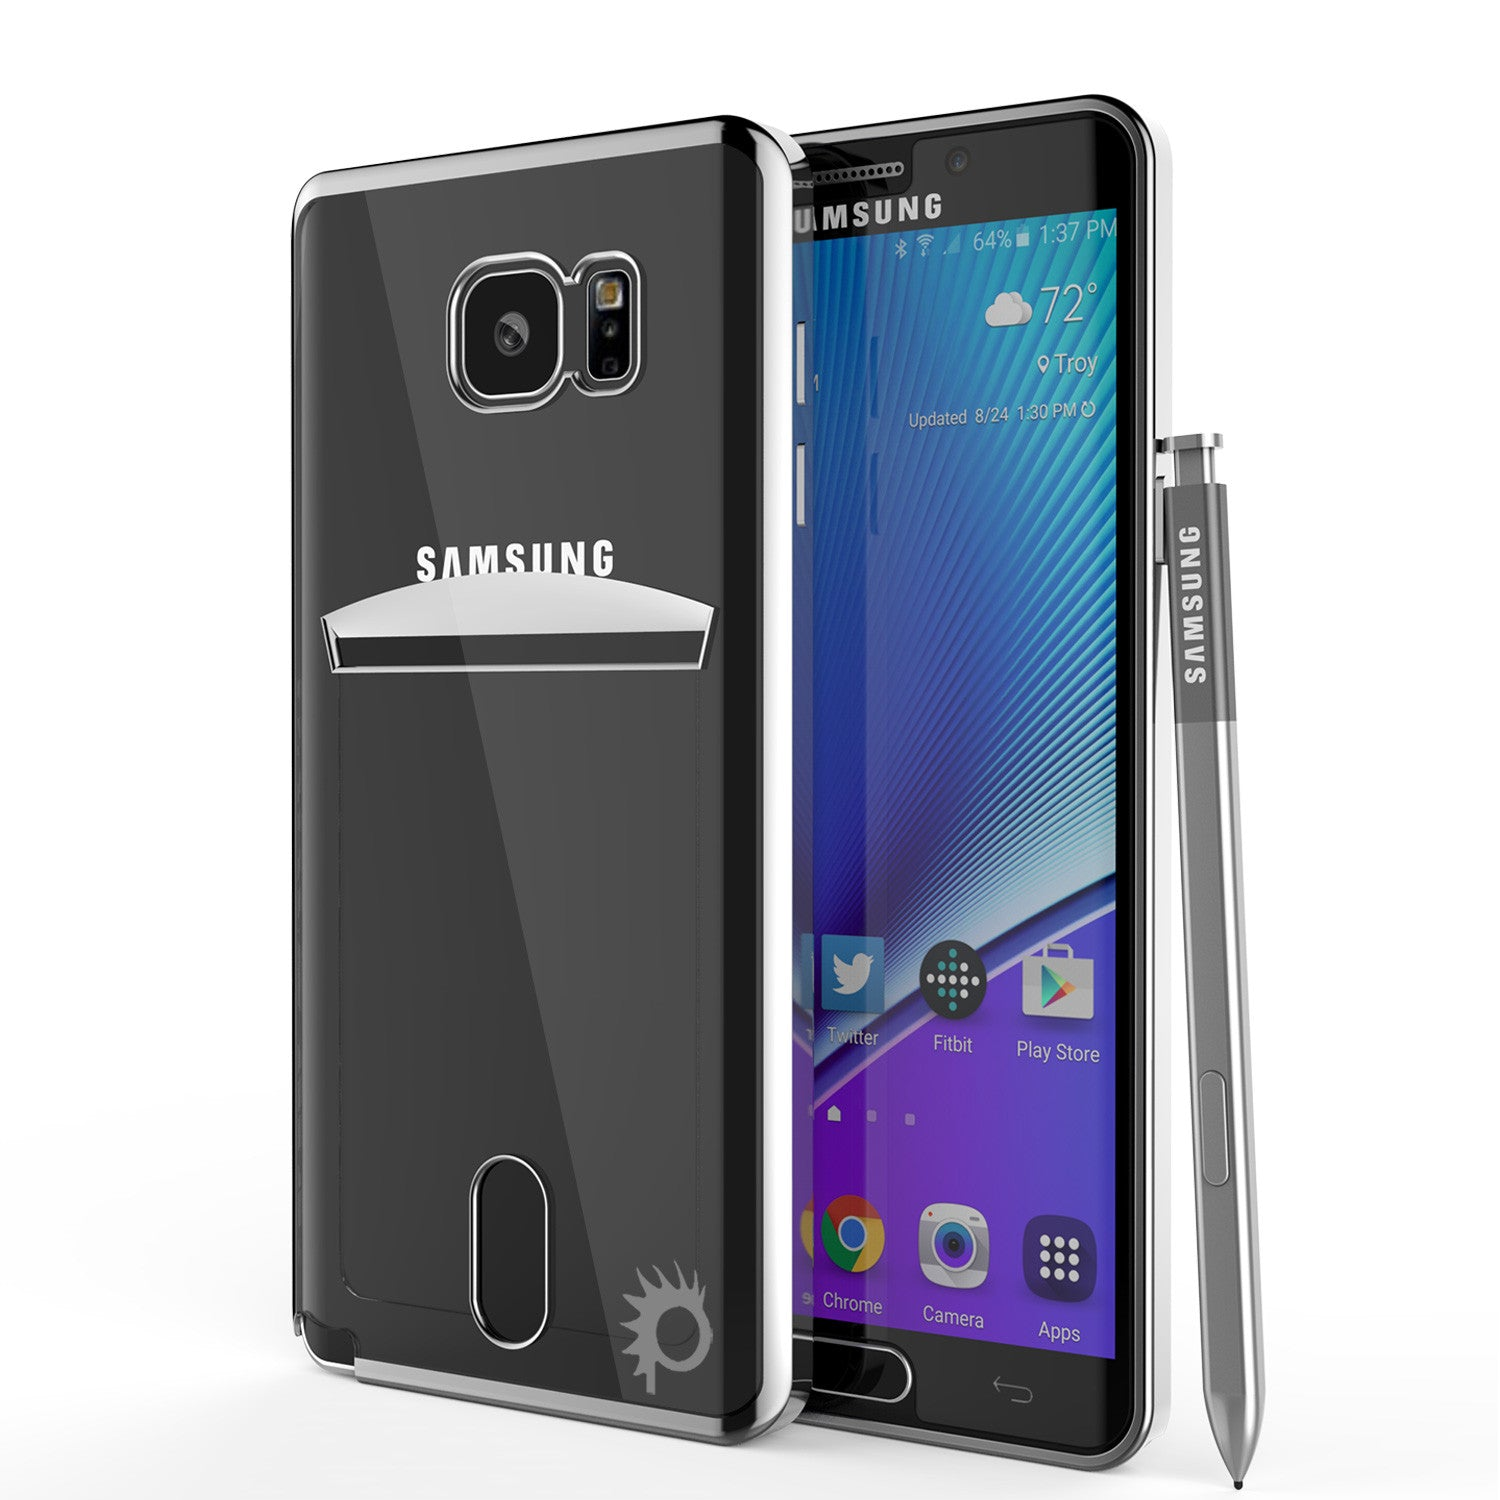 Galaxy Note 5 Case, PUNKCASE® LUCID Silver Series | Card Slot | SHIELD Screen Protector | Ultra fit